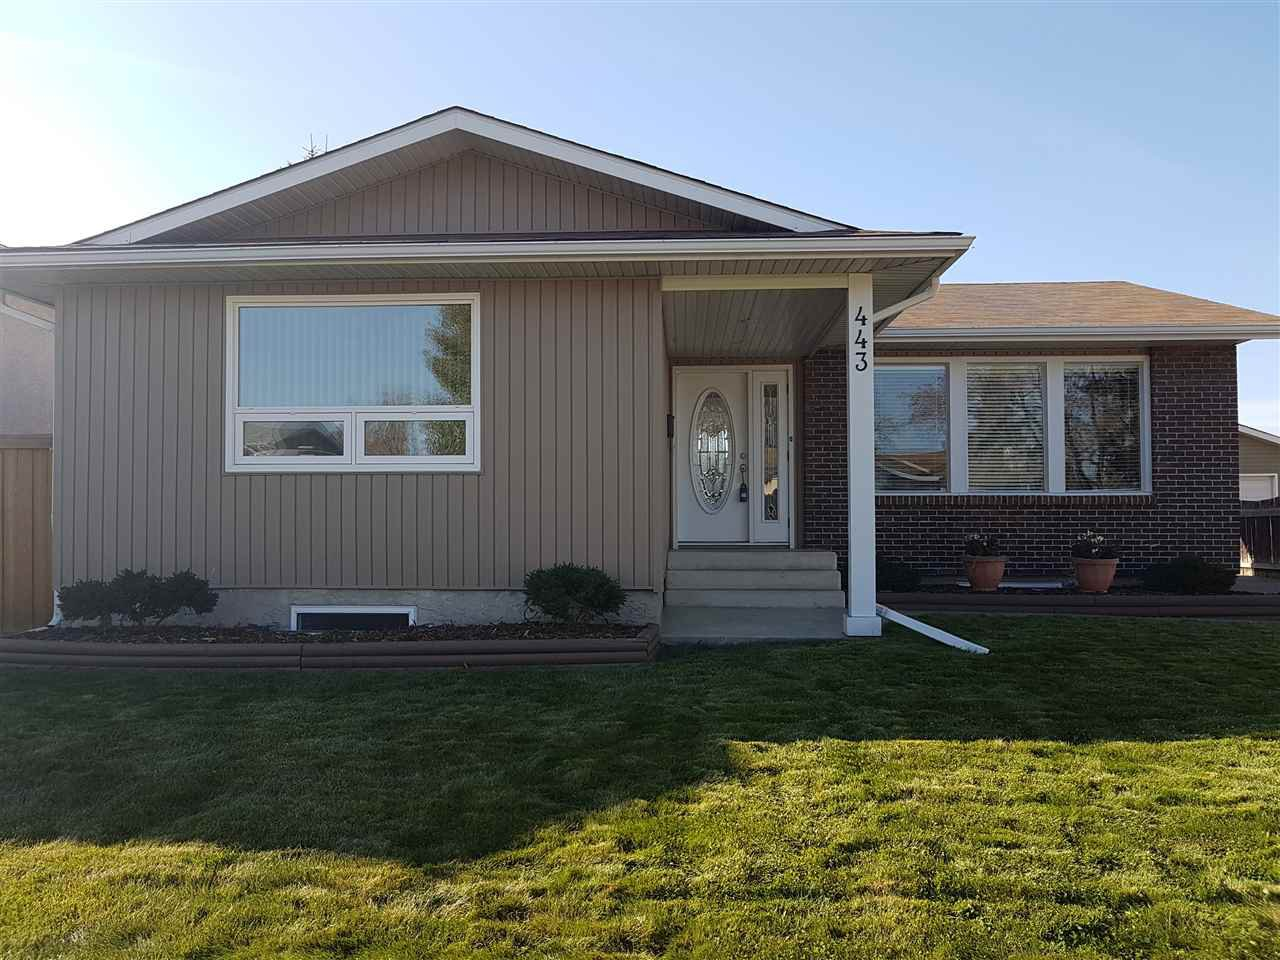 Main Photo: 443 Huffman Crescent in Edmonton: Zone 35 House for sale : MLS®# E4177594